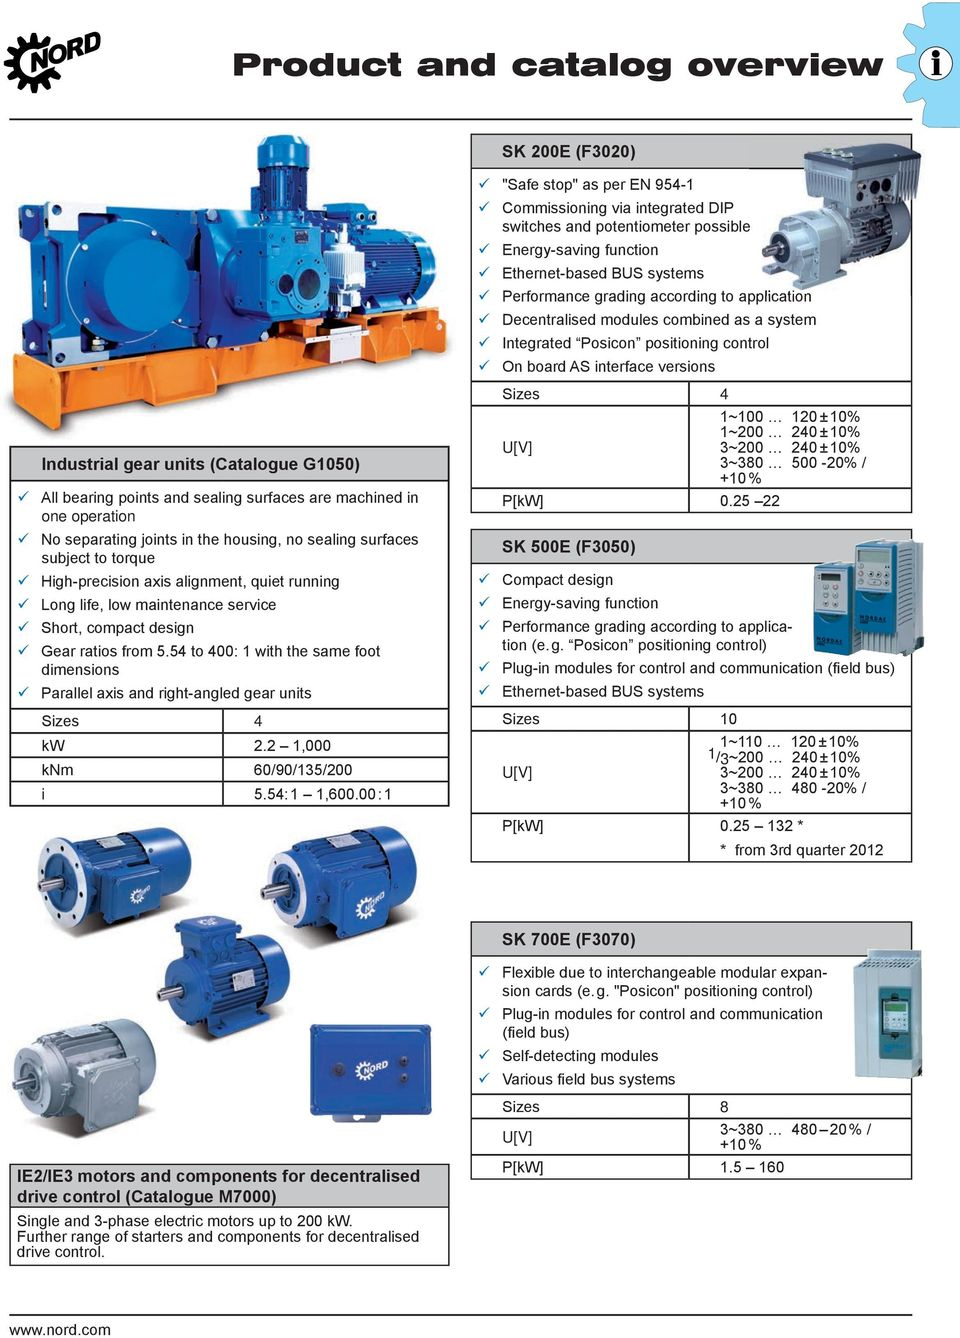 4 to 400: 1 with the same foot dimensions Parallel axis and right-angled gear units Sizes 4 kw 2.2 1,000 knm 60/90/13/200 i.4:1 1,600.